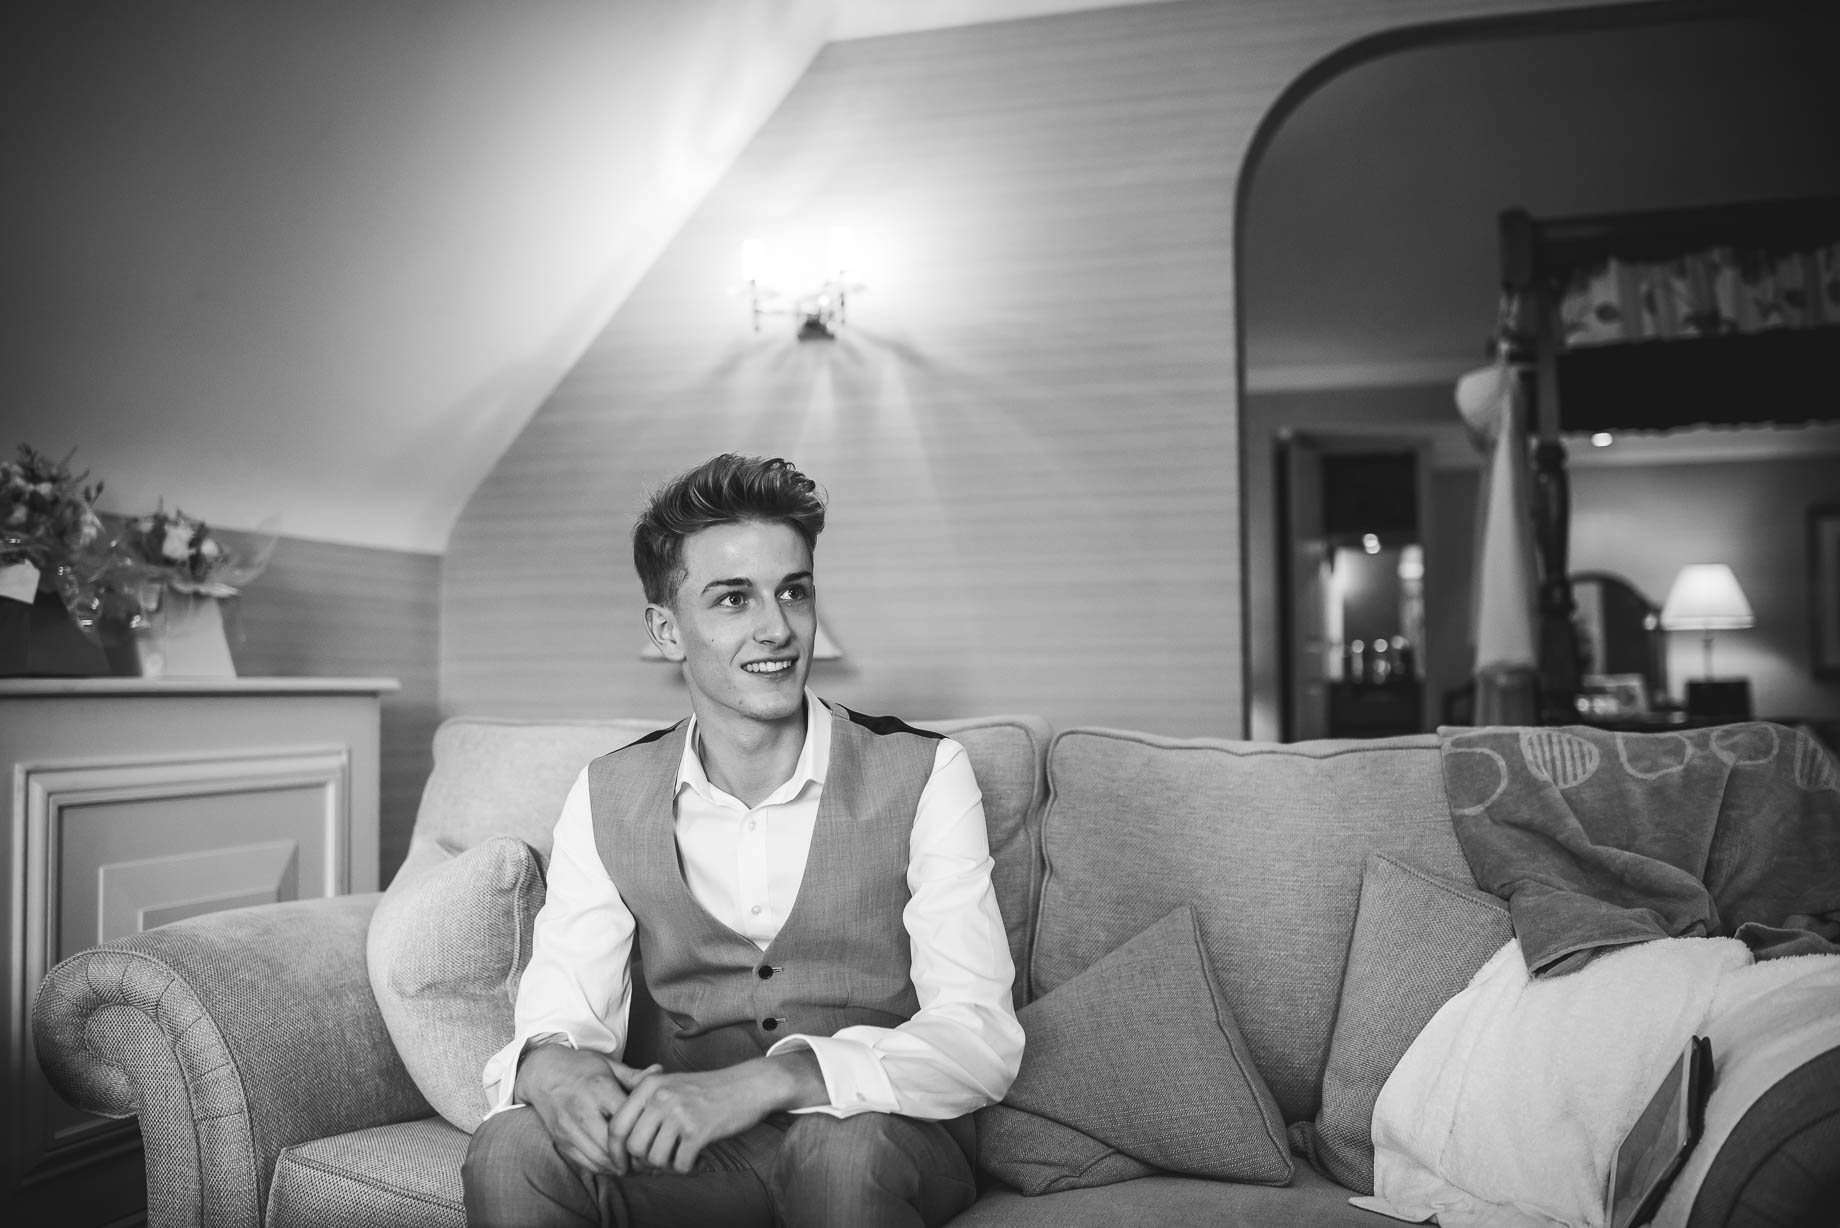 Luton Hoo wedding photography by Guy Collier Photography - Lauren and Gem (10 of 178)